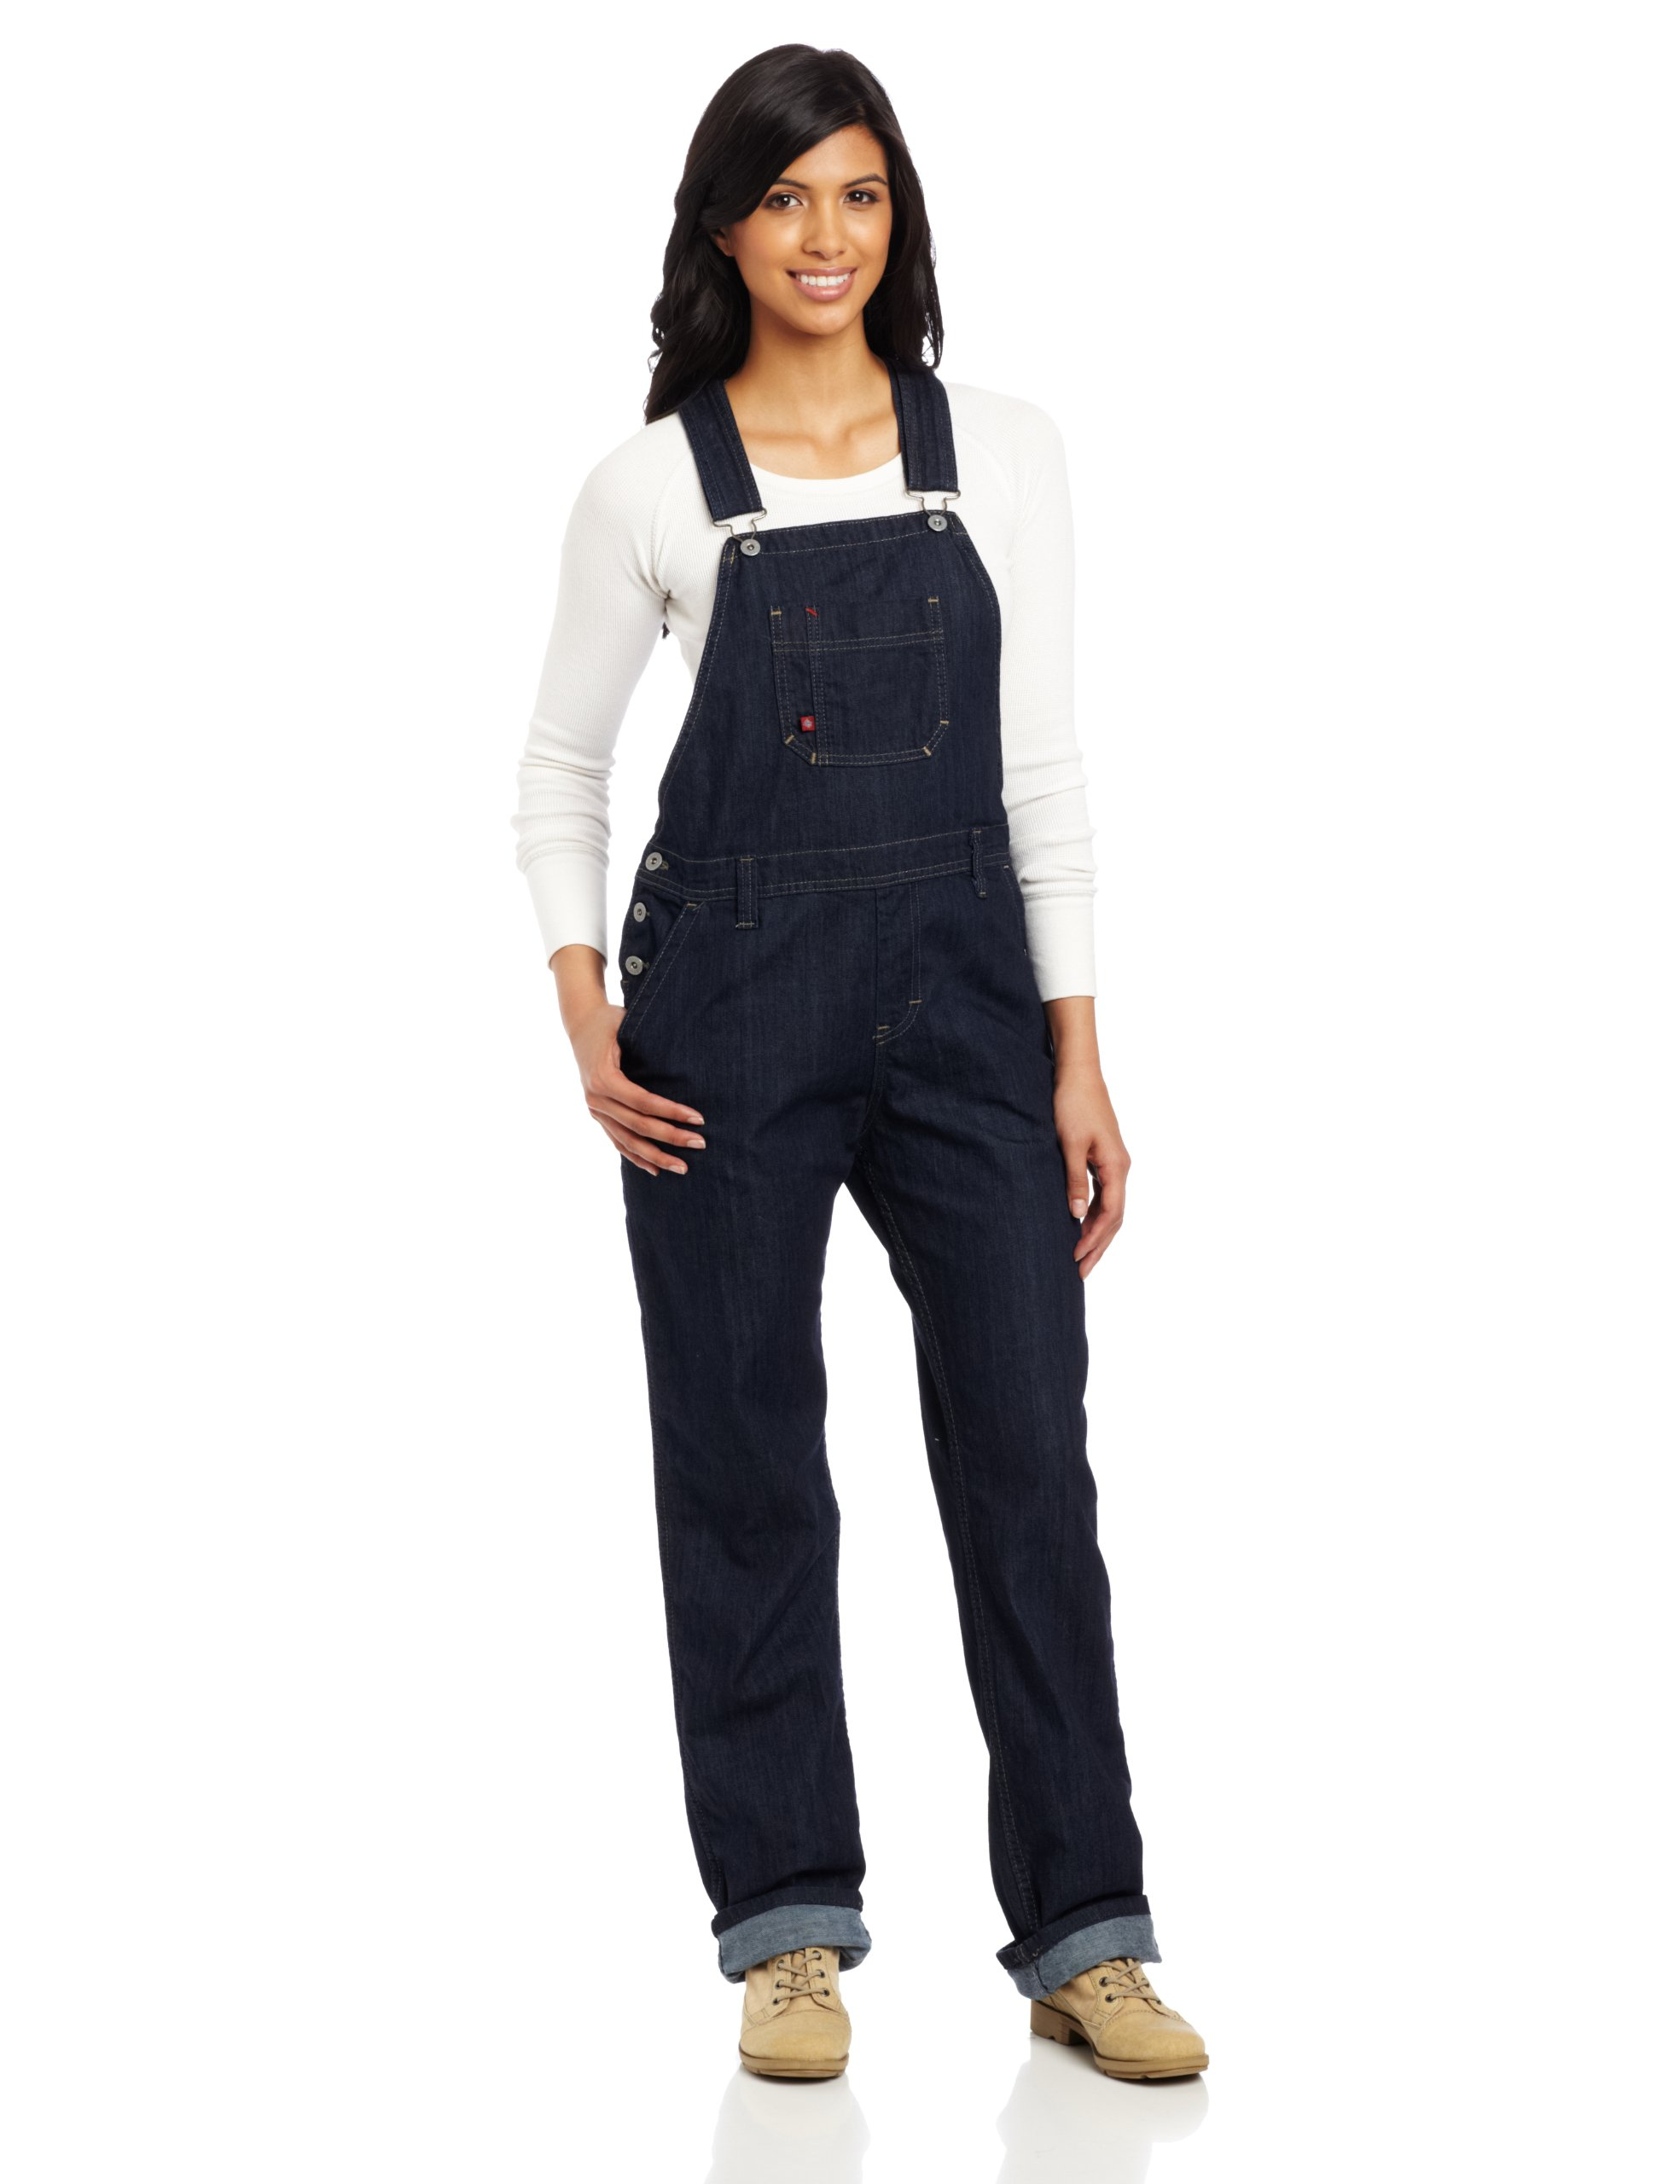 Dickies Women's Denim Bib Overall, Blue Denim, Medium